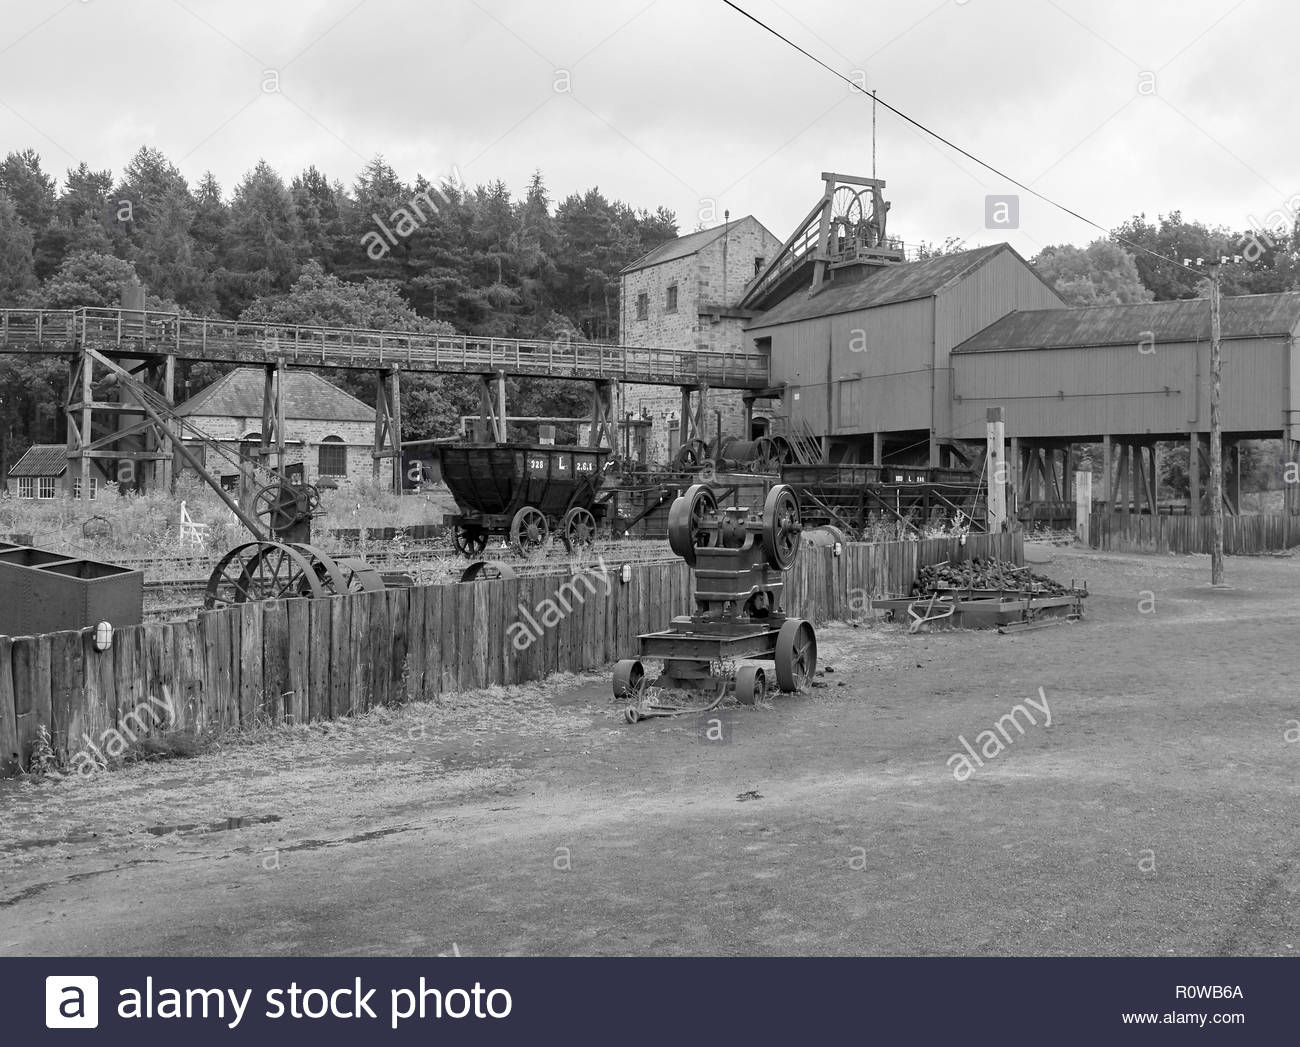 The 1900s coal pit colliery in beamish open air museum in county durham in england uk - Stock Image